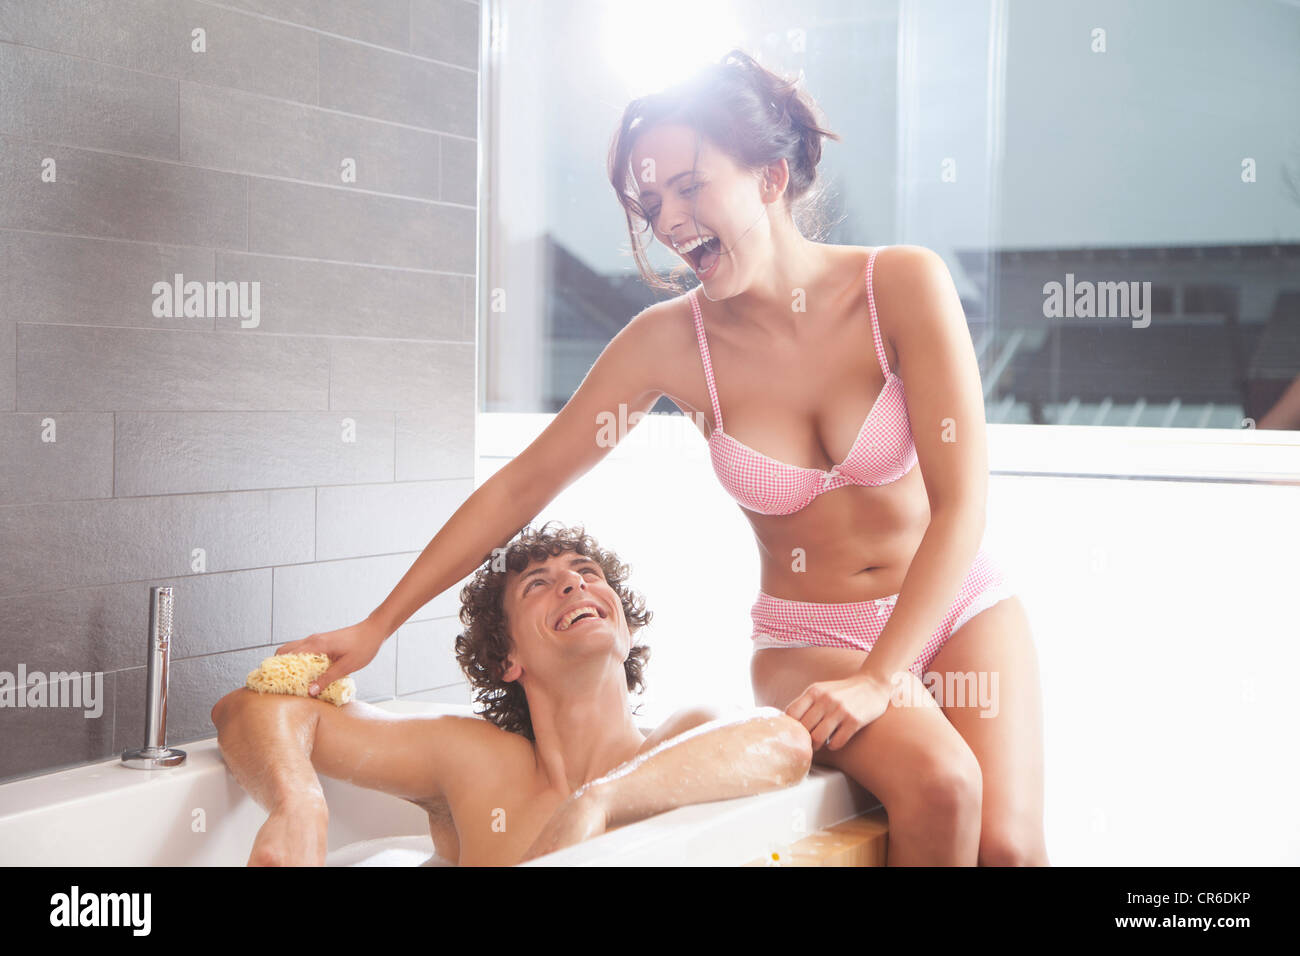 Germany  Bavaria  Young woman bathing man in bathroom. Germany  Bavaria  Young woman bathing man in bathroom Stock Photo